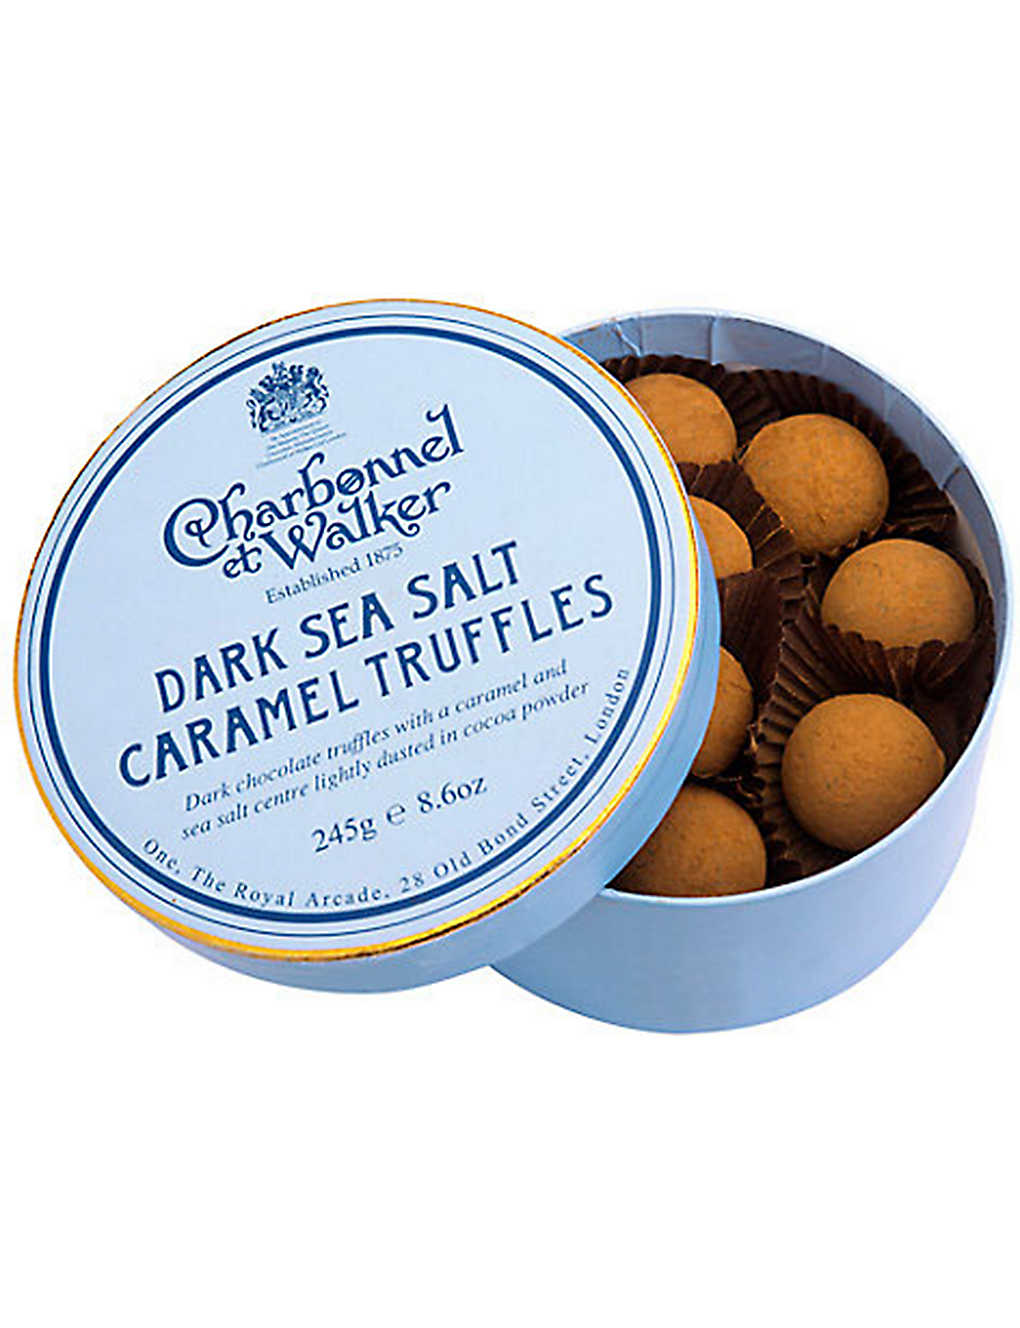 CHARBONNEL ET WALKER: Dark Sea Salt Caramel truffles 245g